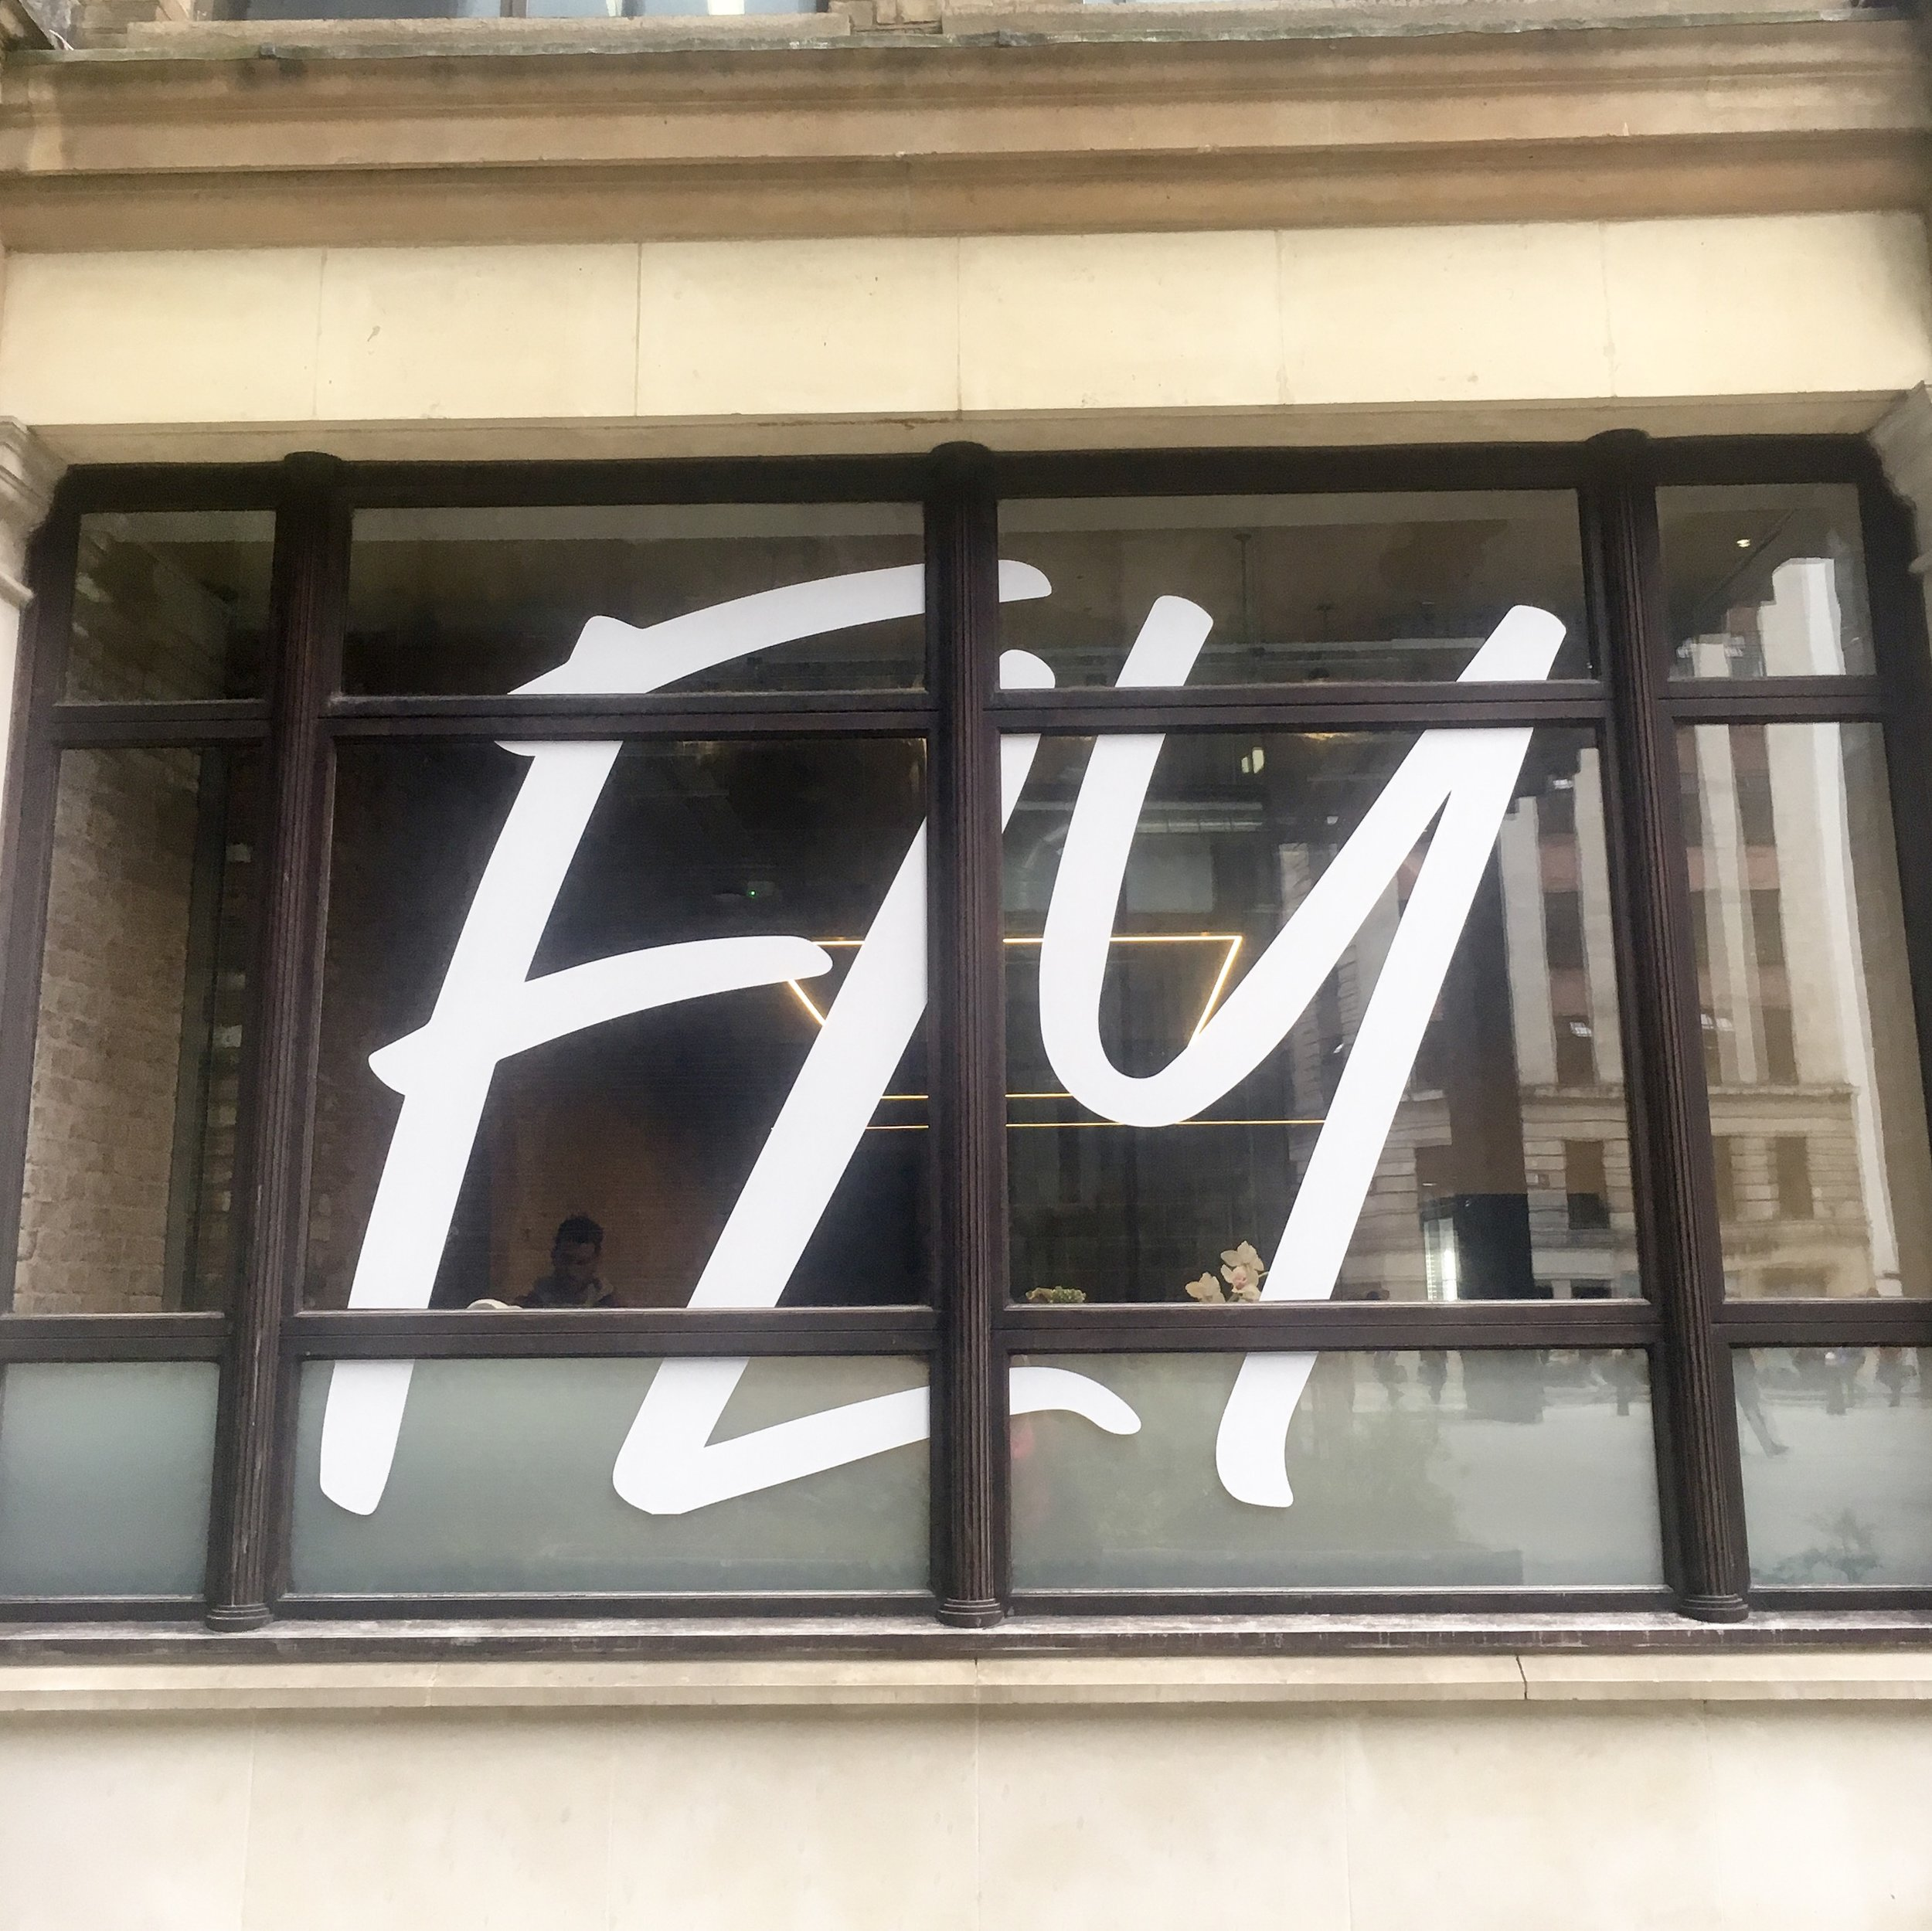 A Pretty Place To Play Tried & Tested FLY LDN